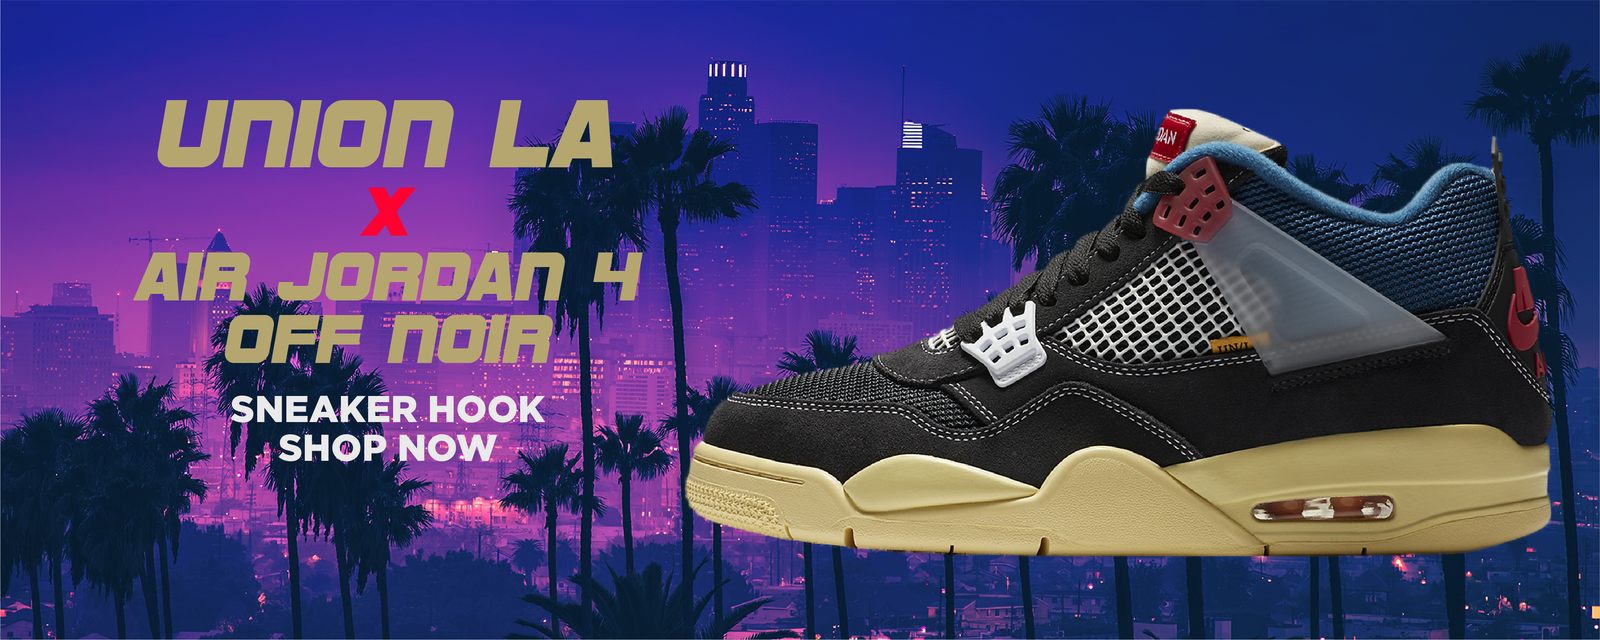 Jordan 4 Off Noir x Union LA Clothing to match Sneakers | Clothing to match Air Jordan 4 Off Noir x Union LA Shoes